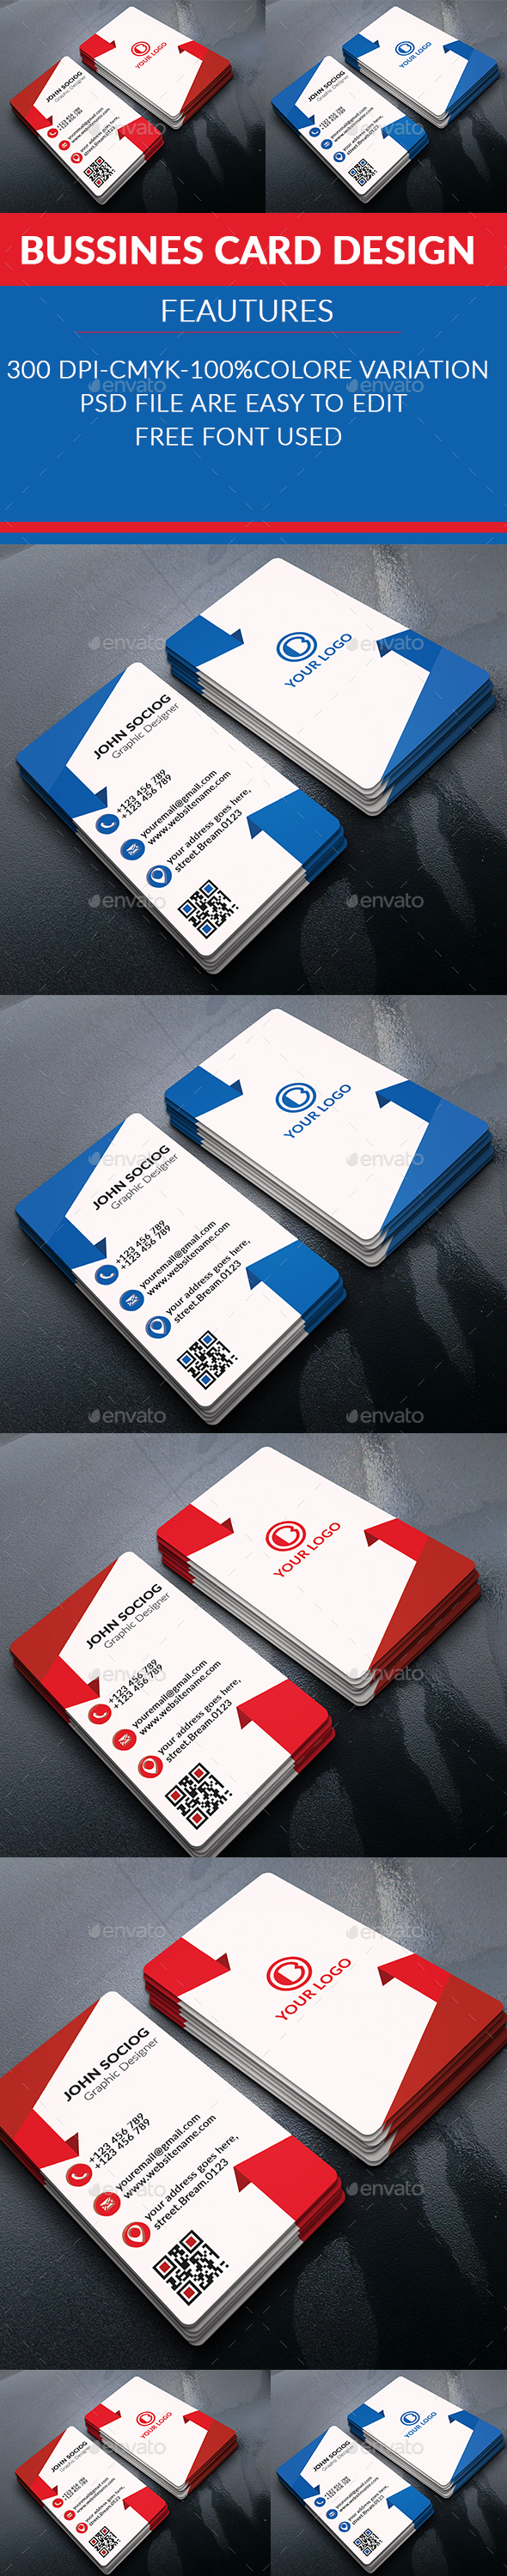 Corporate Business Cards - Business Cards Print Templates